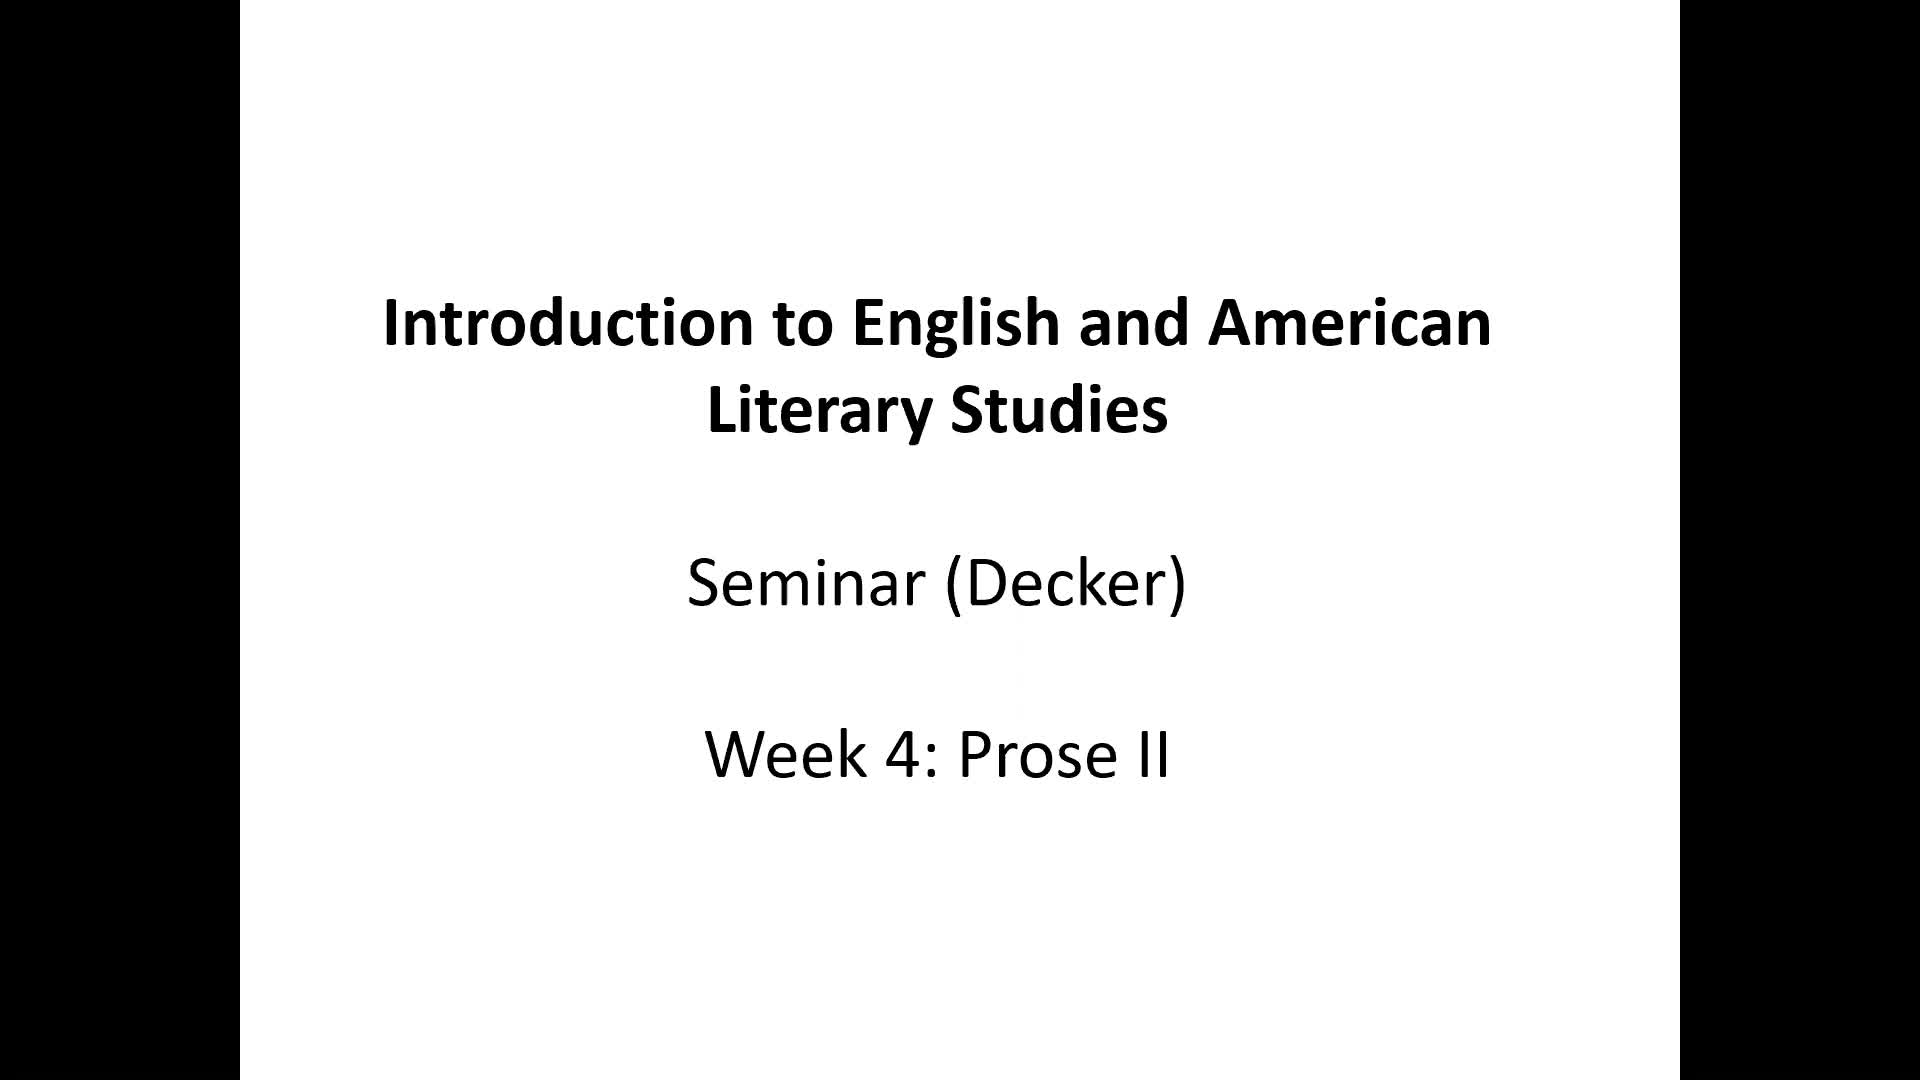 Introduction to English and American Literary Studies - Seminar Decker - Week 4